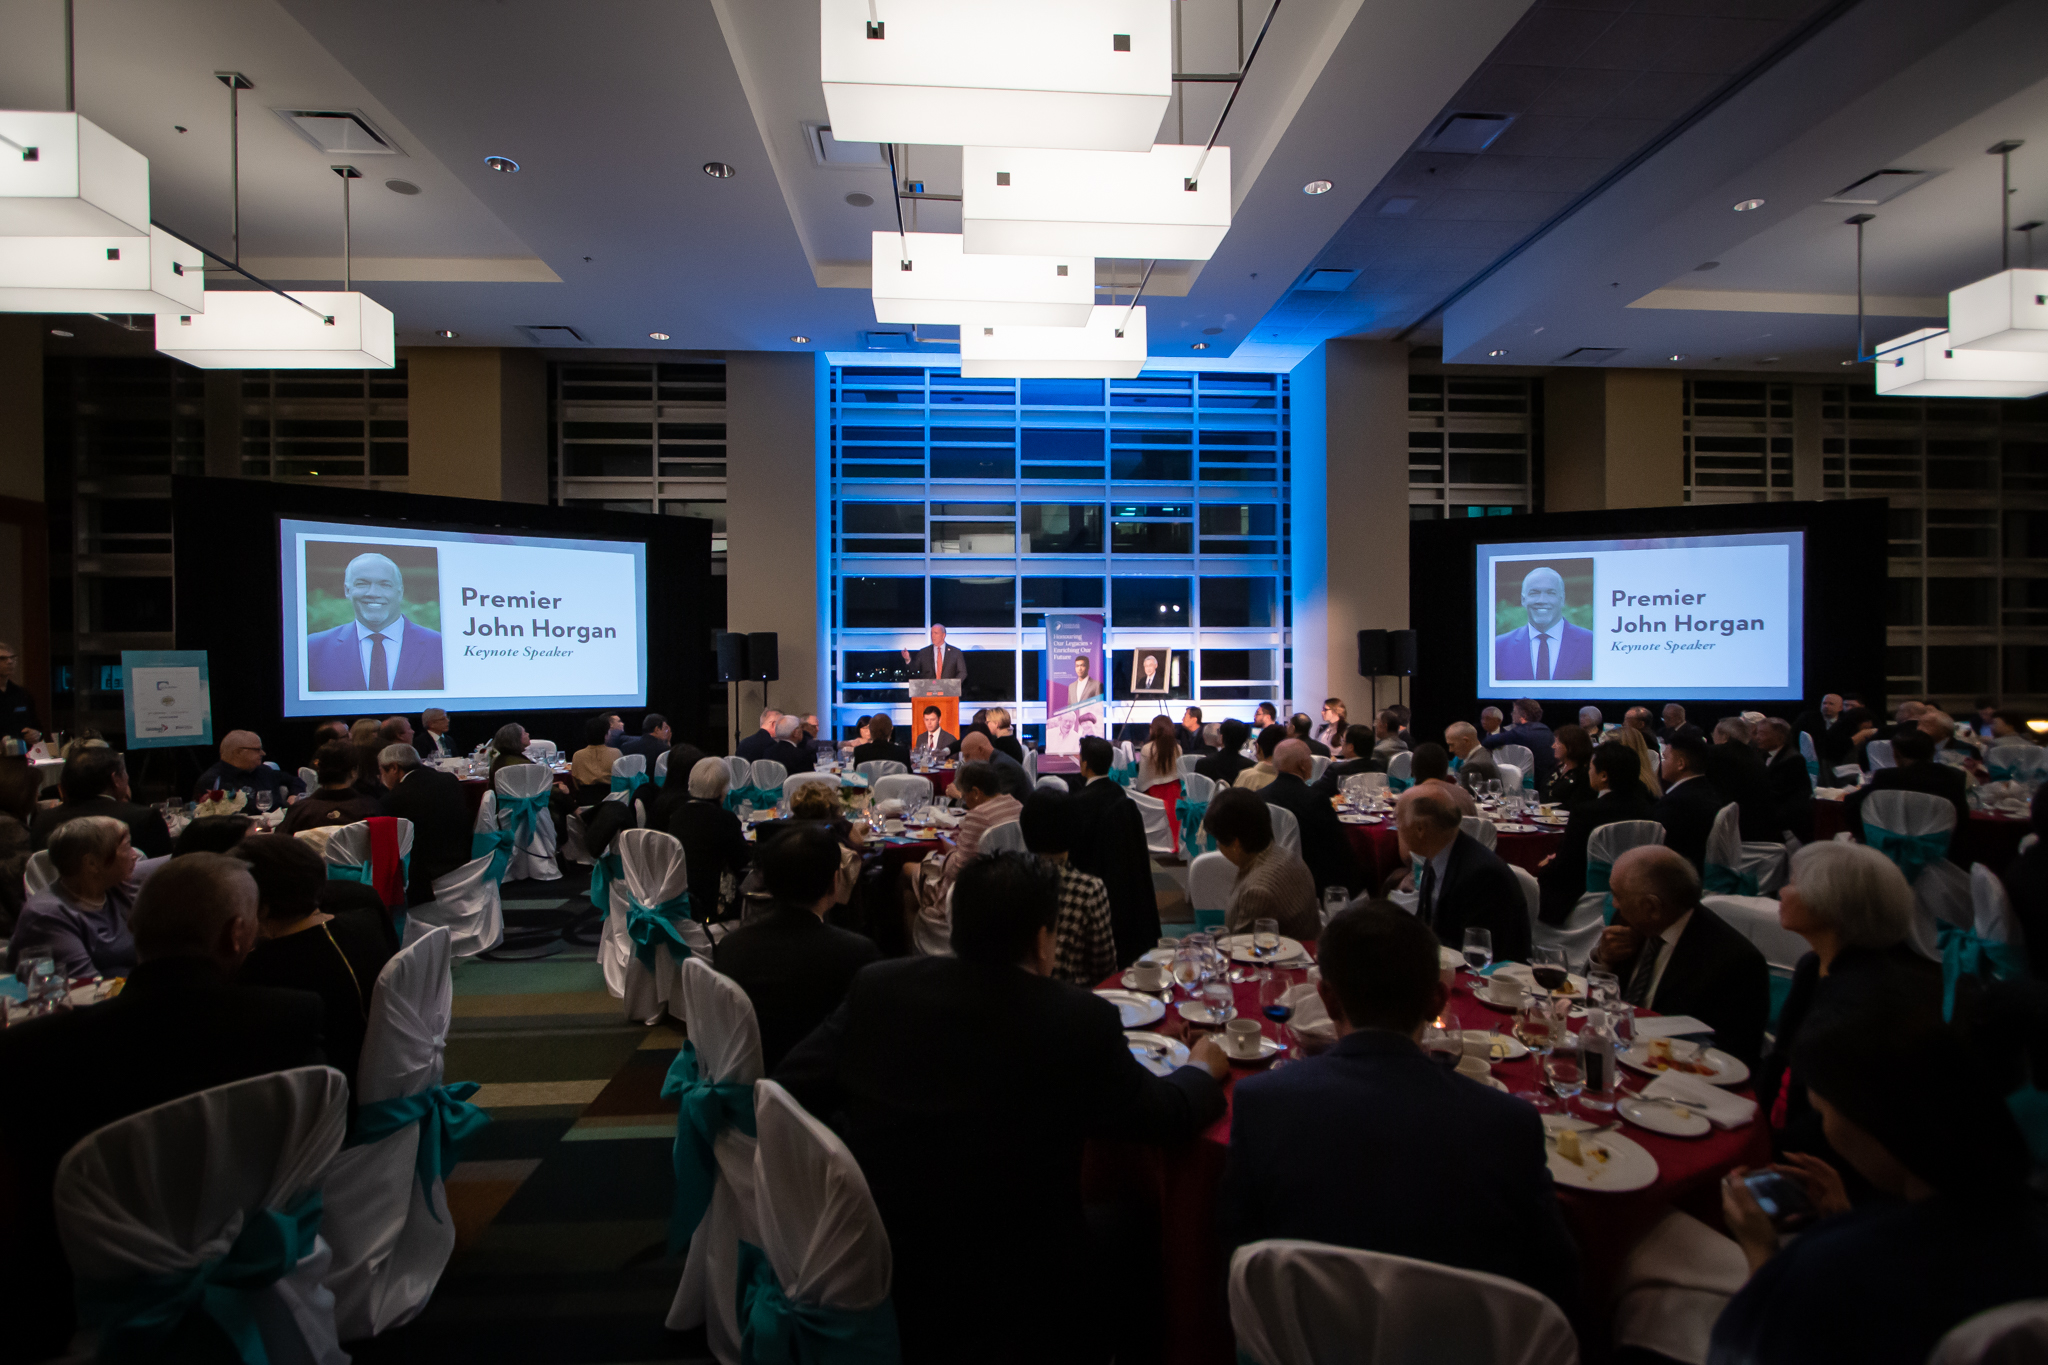 190310 Sakura Gala 2019 18-47-04-2 - Photo by Adam PW Smith.jpg